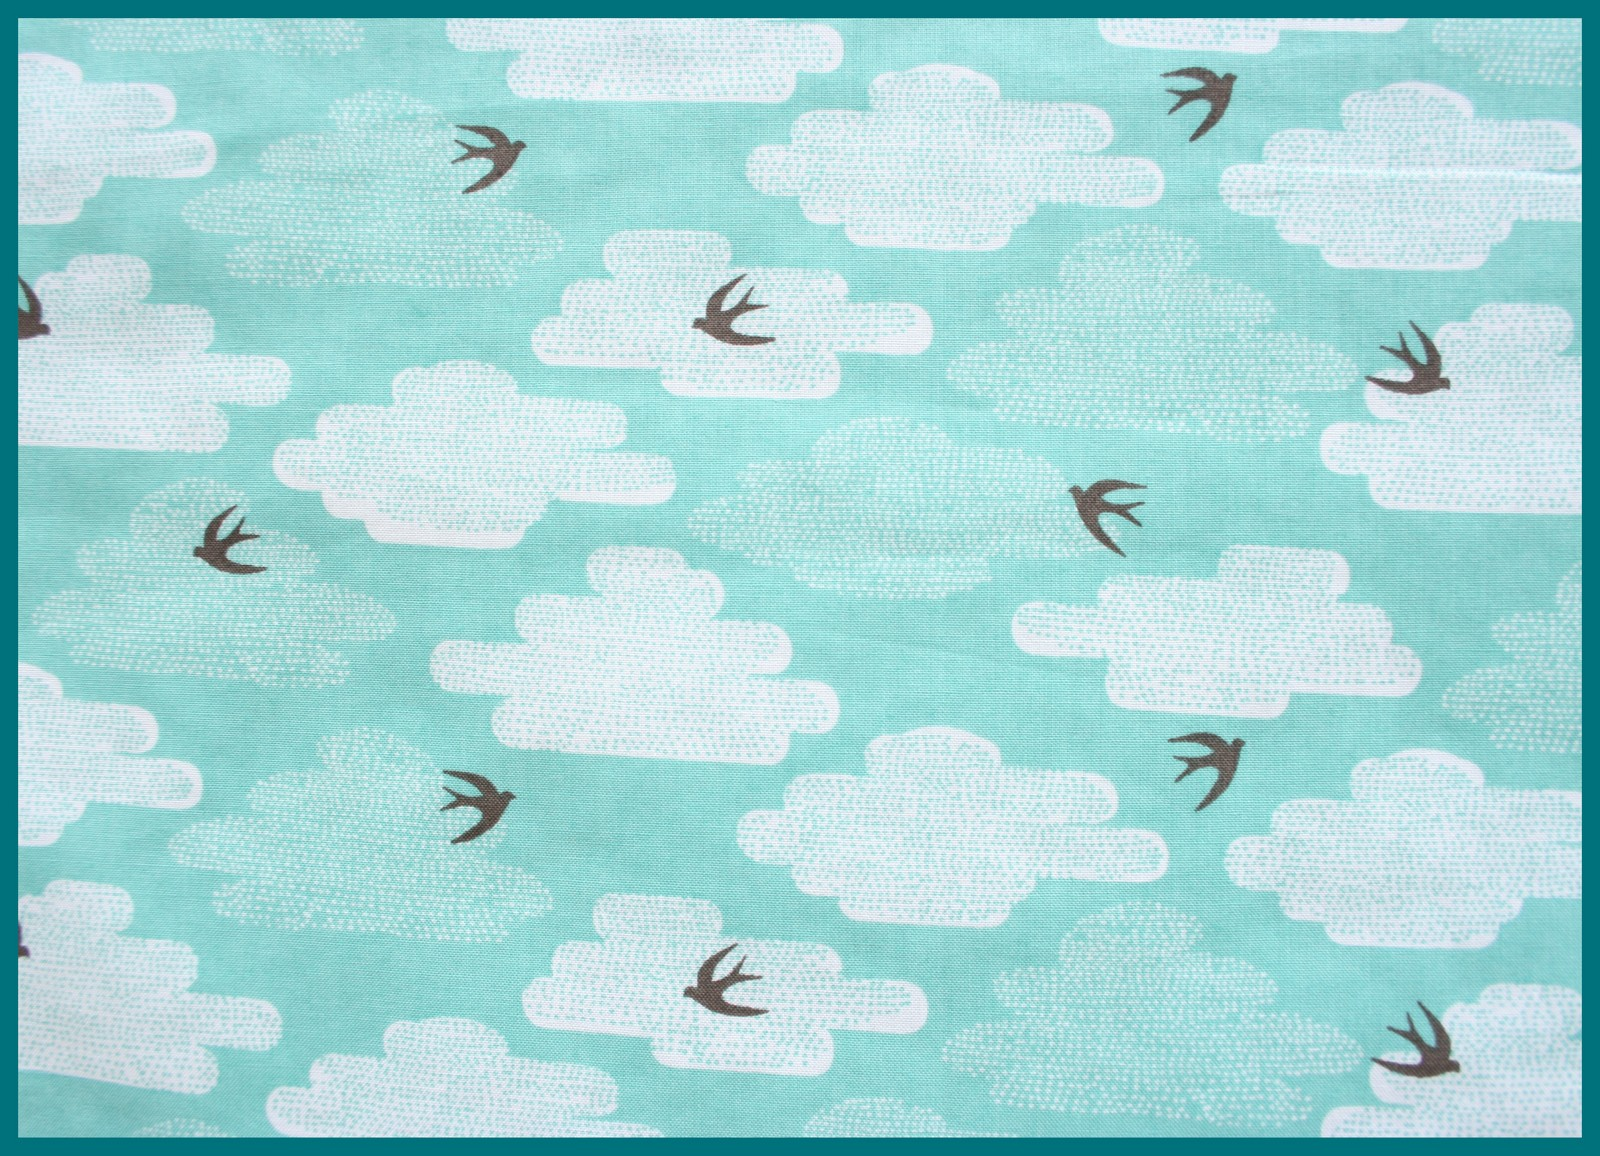 cloud9 fabric: up, up & away